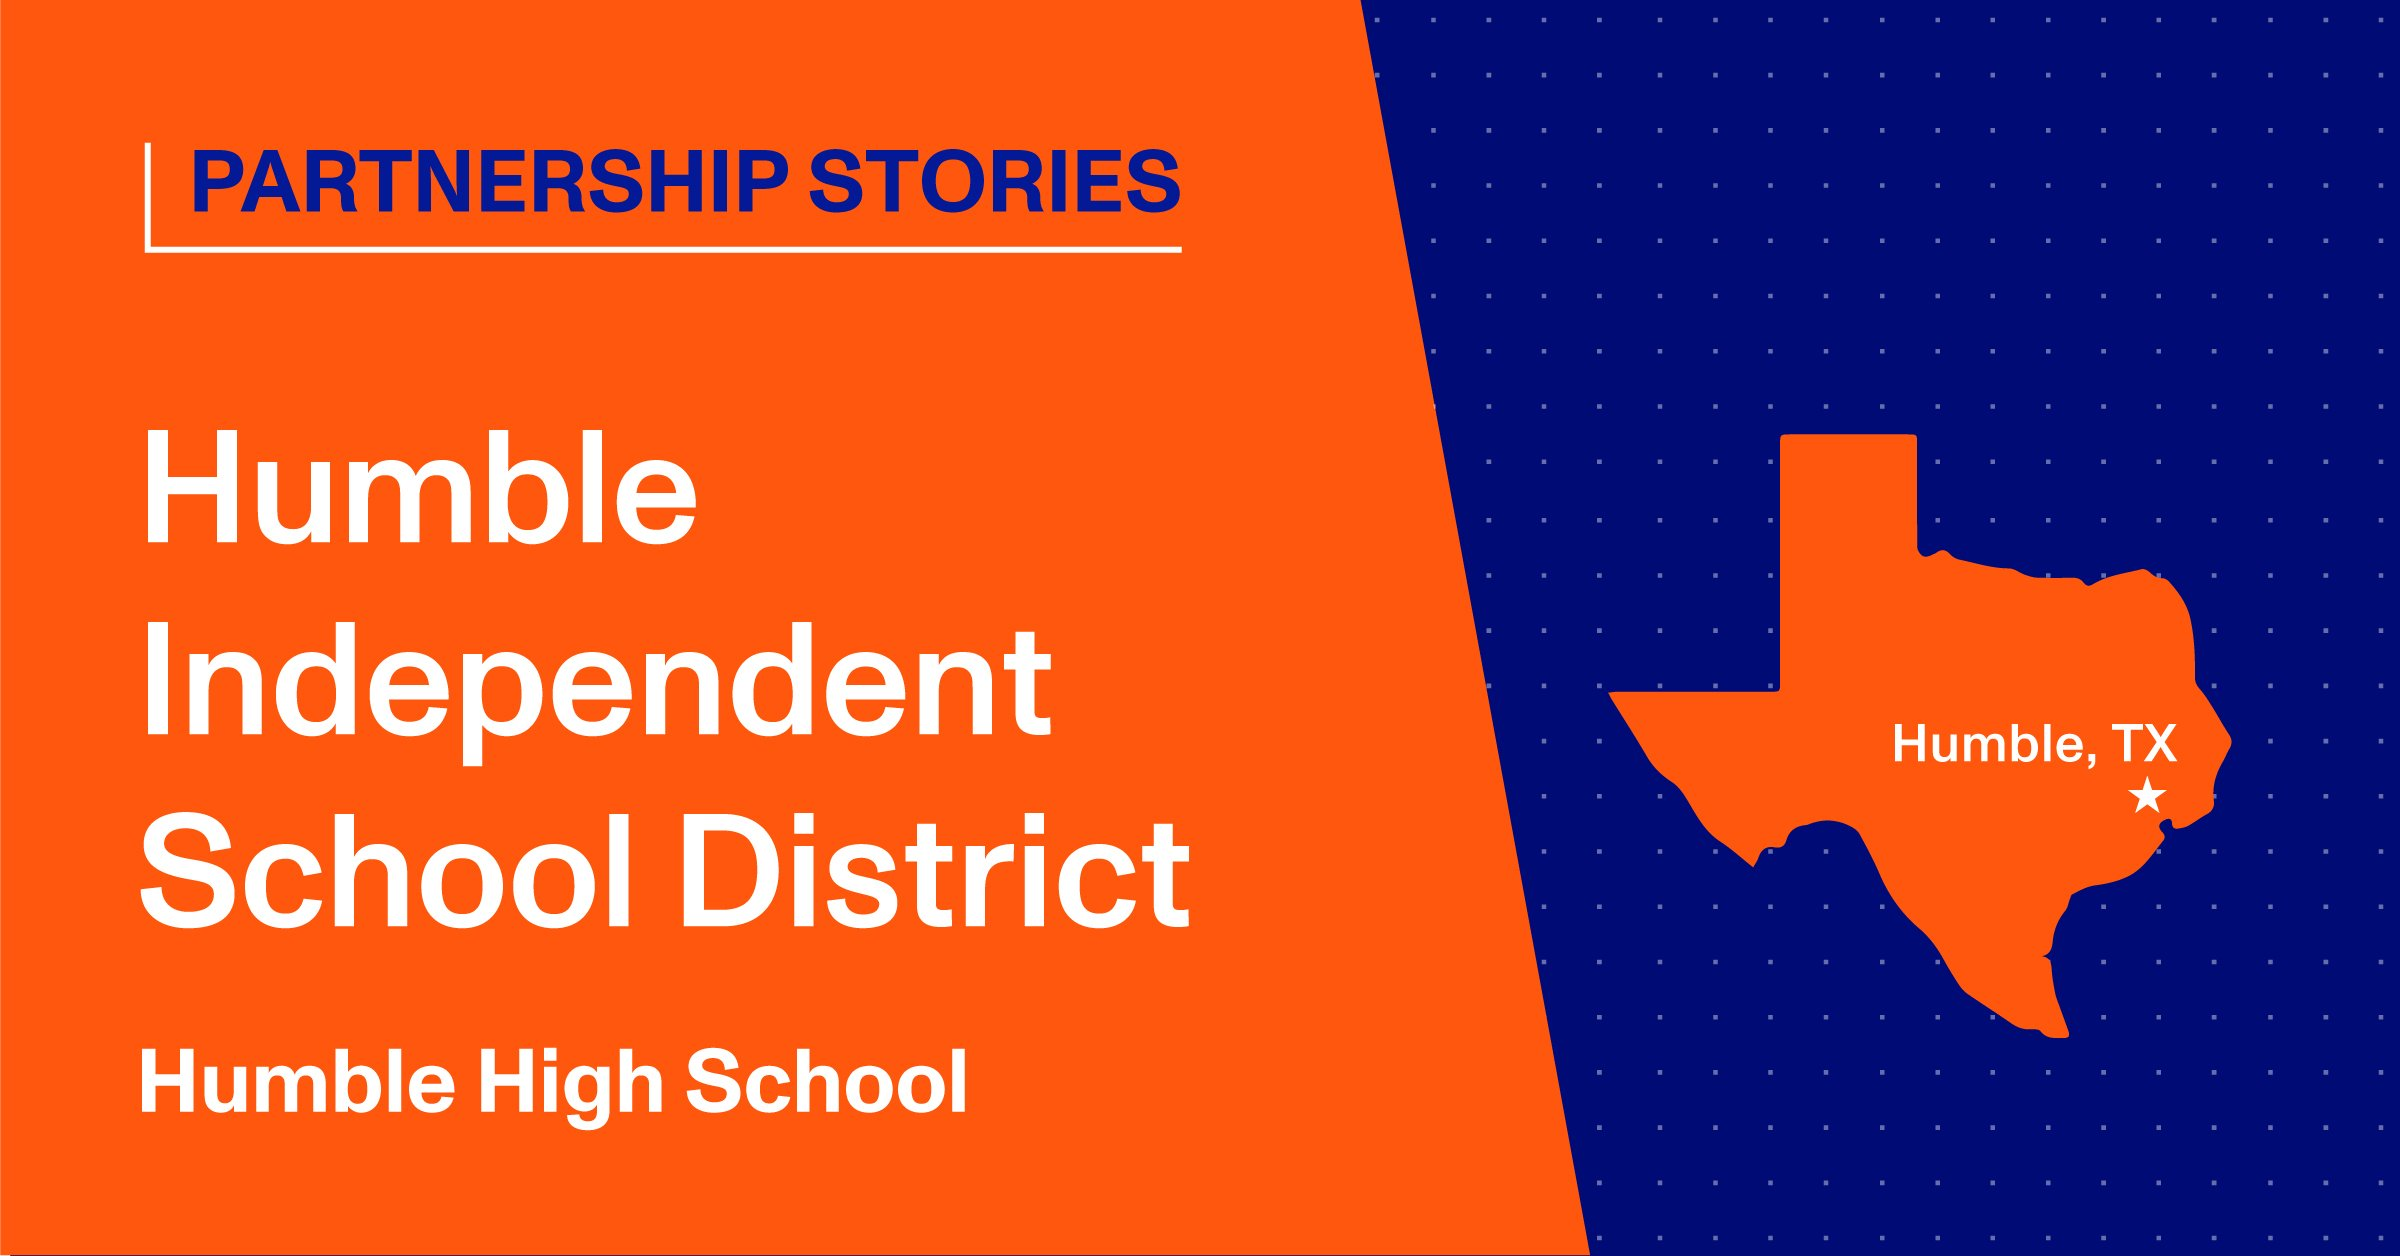 Humble Independent School District, Humble High School